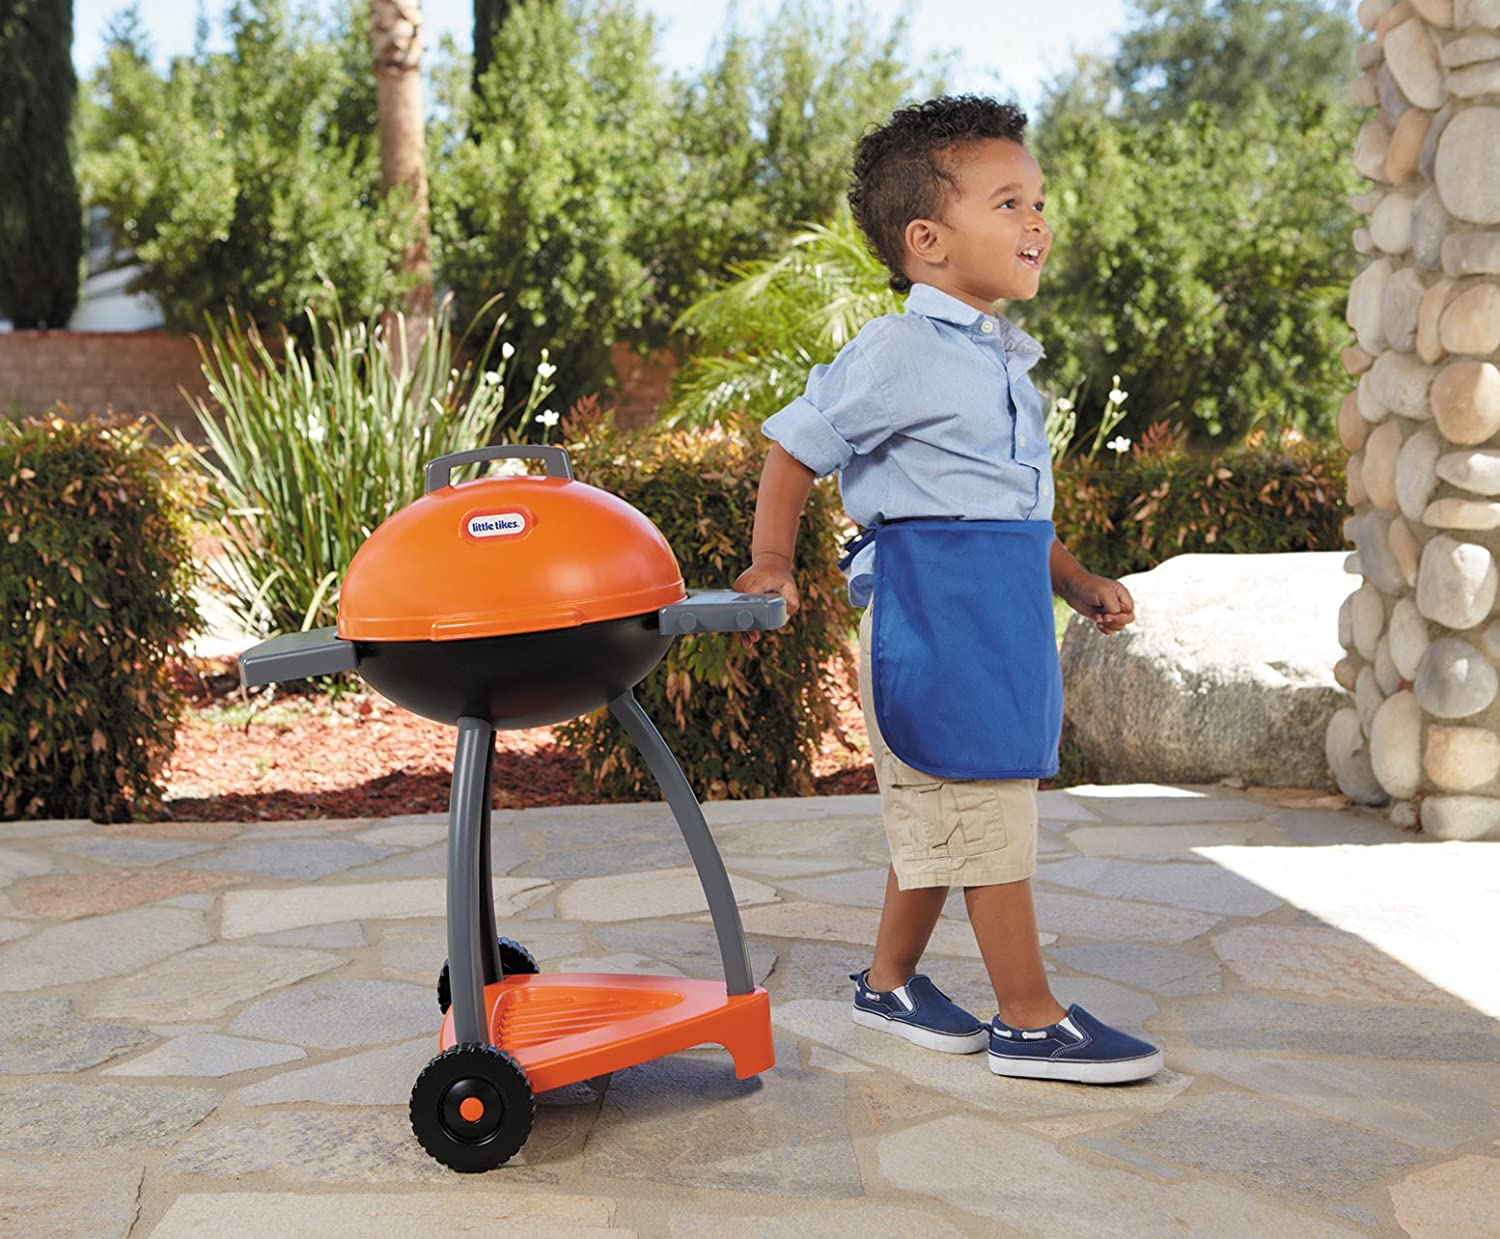 An Image of Little Tikes Sizzle and Serve Grill